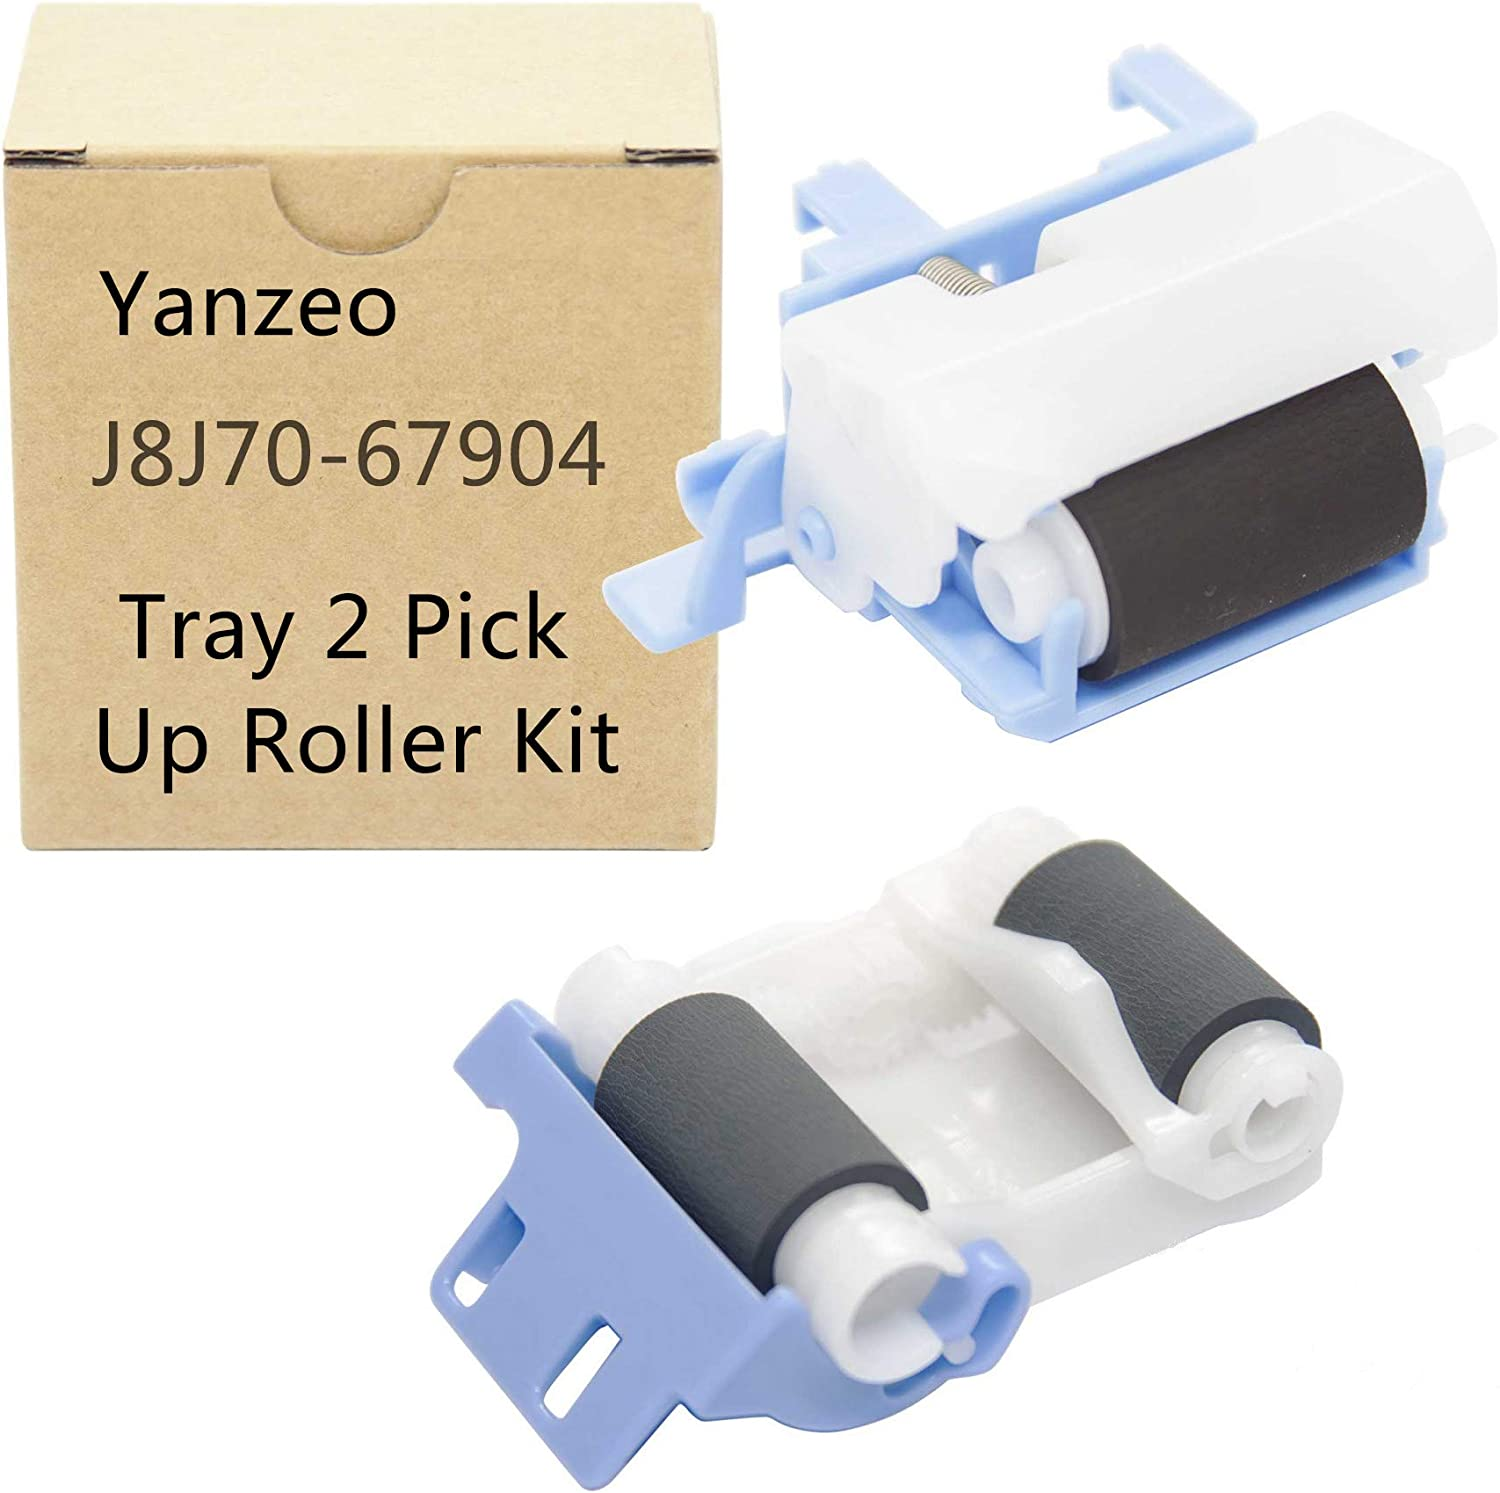 1set Pickup Roller for HP Laserjet M607 M608 M609 M633 M631 Printer